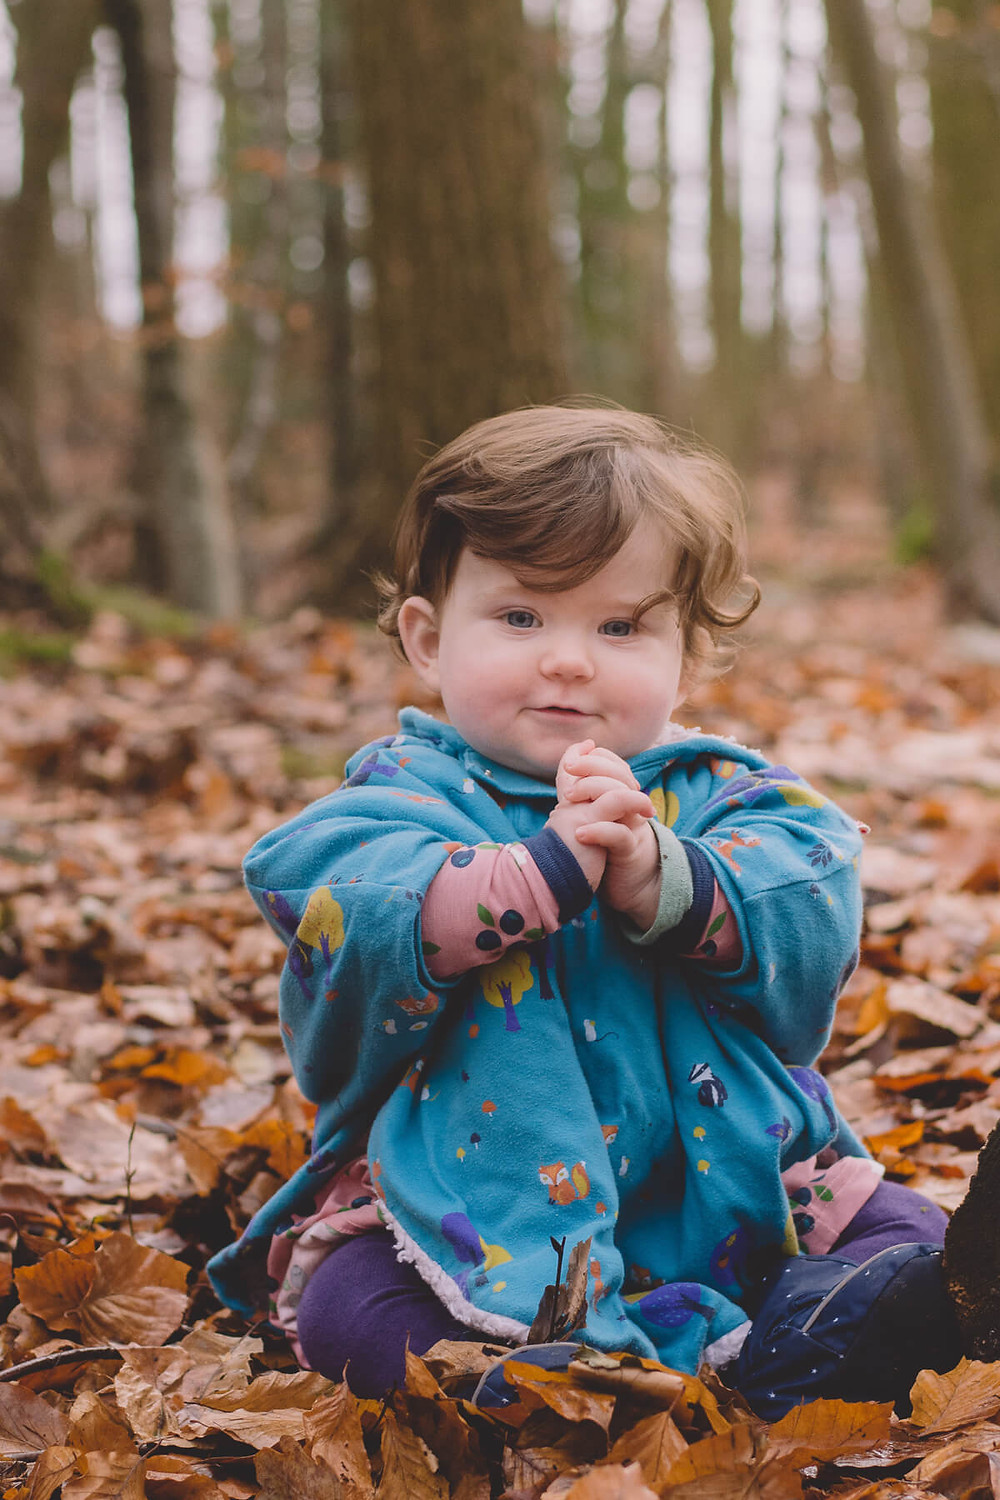 baby girl sitting on forest floor clapping hands sunny